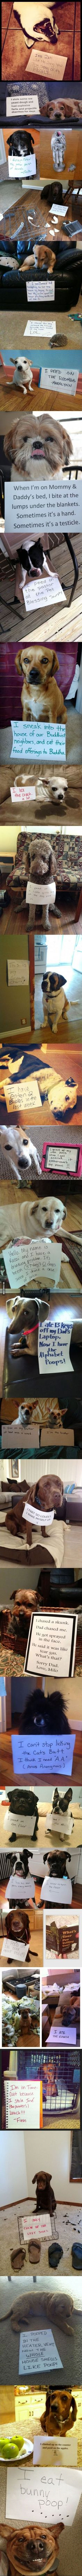 Im laughing so hard at these dog shamings... the picture of the last dog made me laugh the hardest: